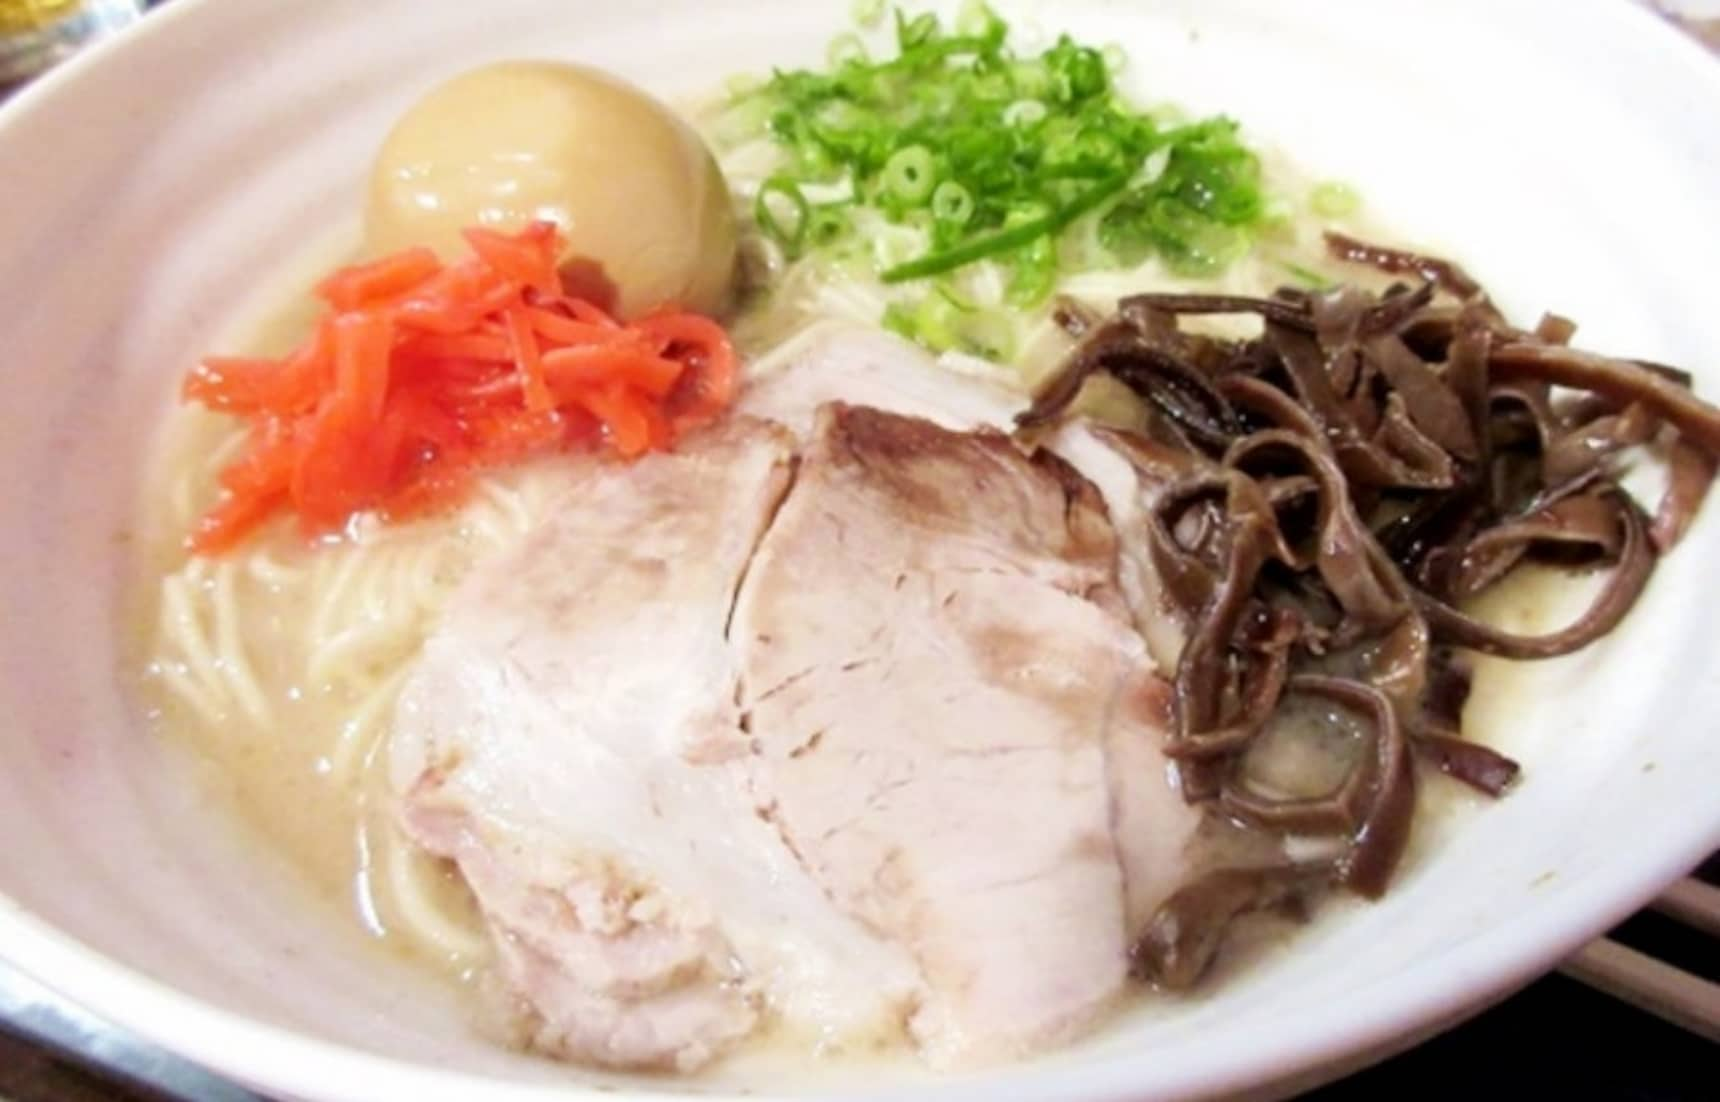 All-You-Can-Eat Ramen for Less Than US$10